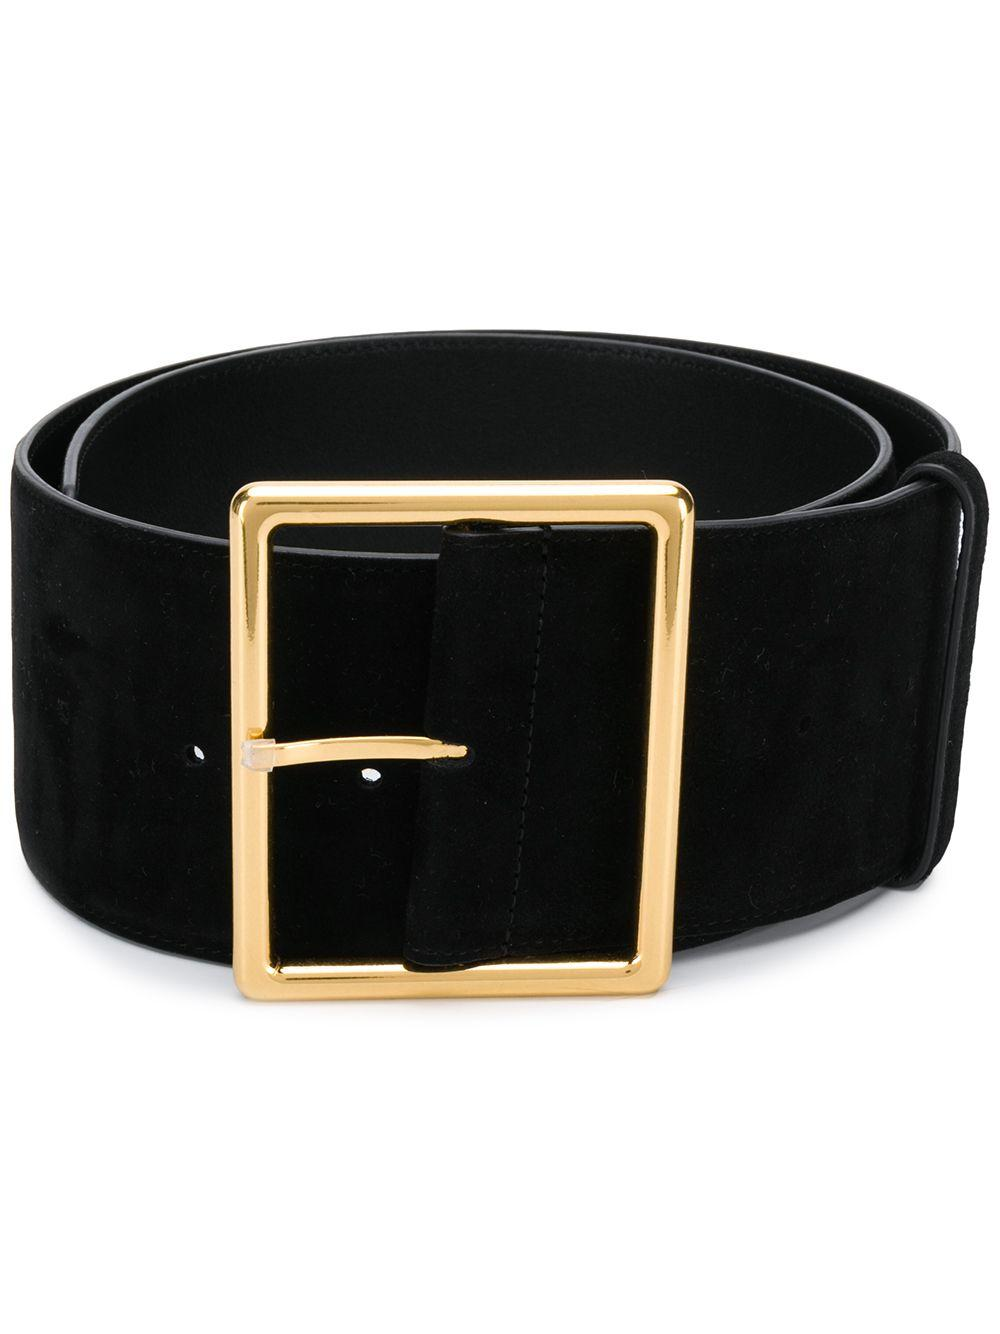 Wide Leather Suede Belt Item # 592860C200J